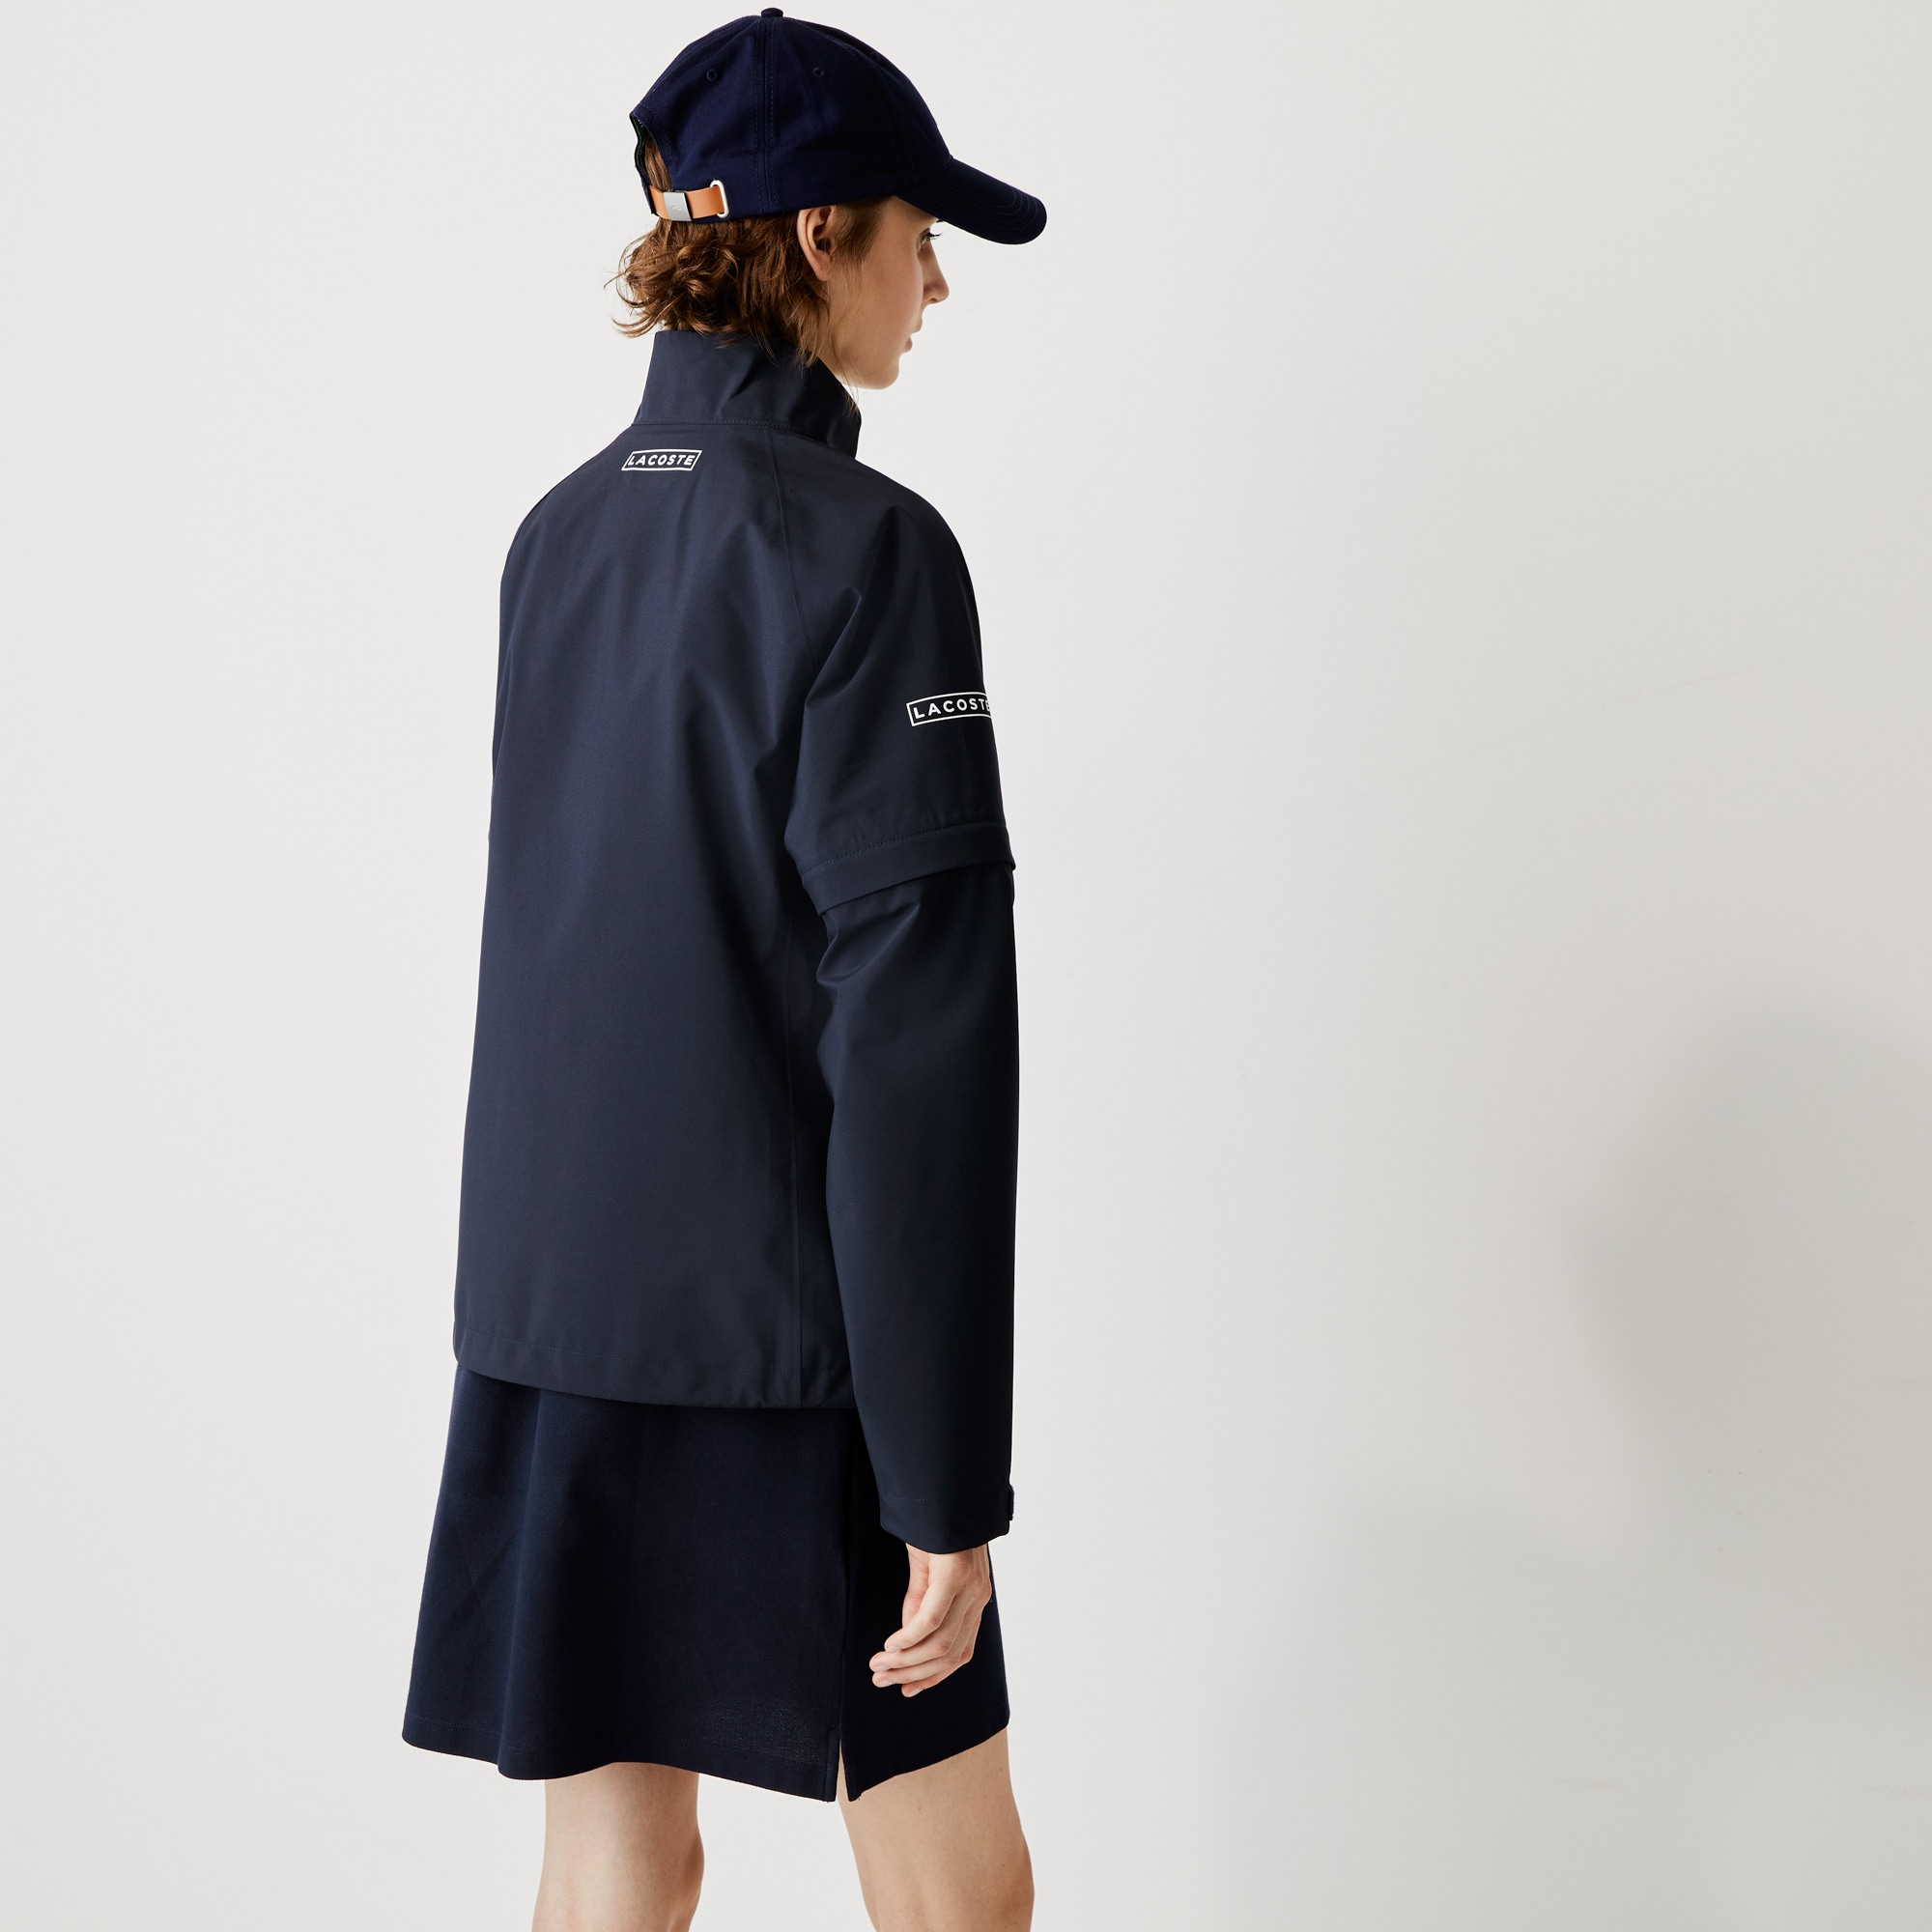 Women's Lacoste SPORT Technical Zip Golf Rain Jacket